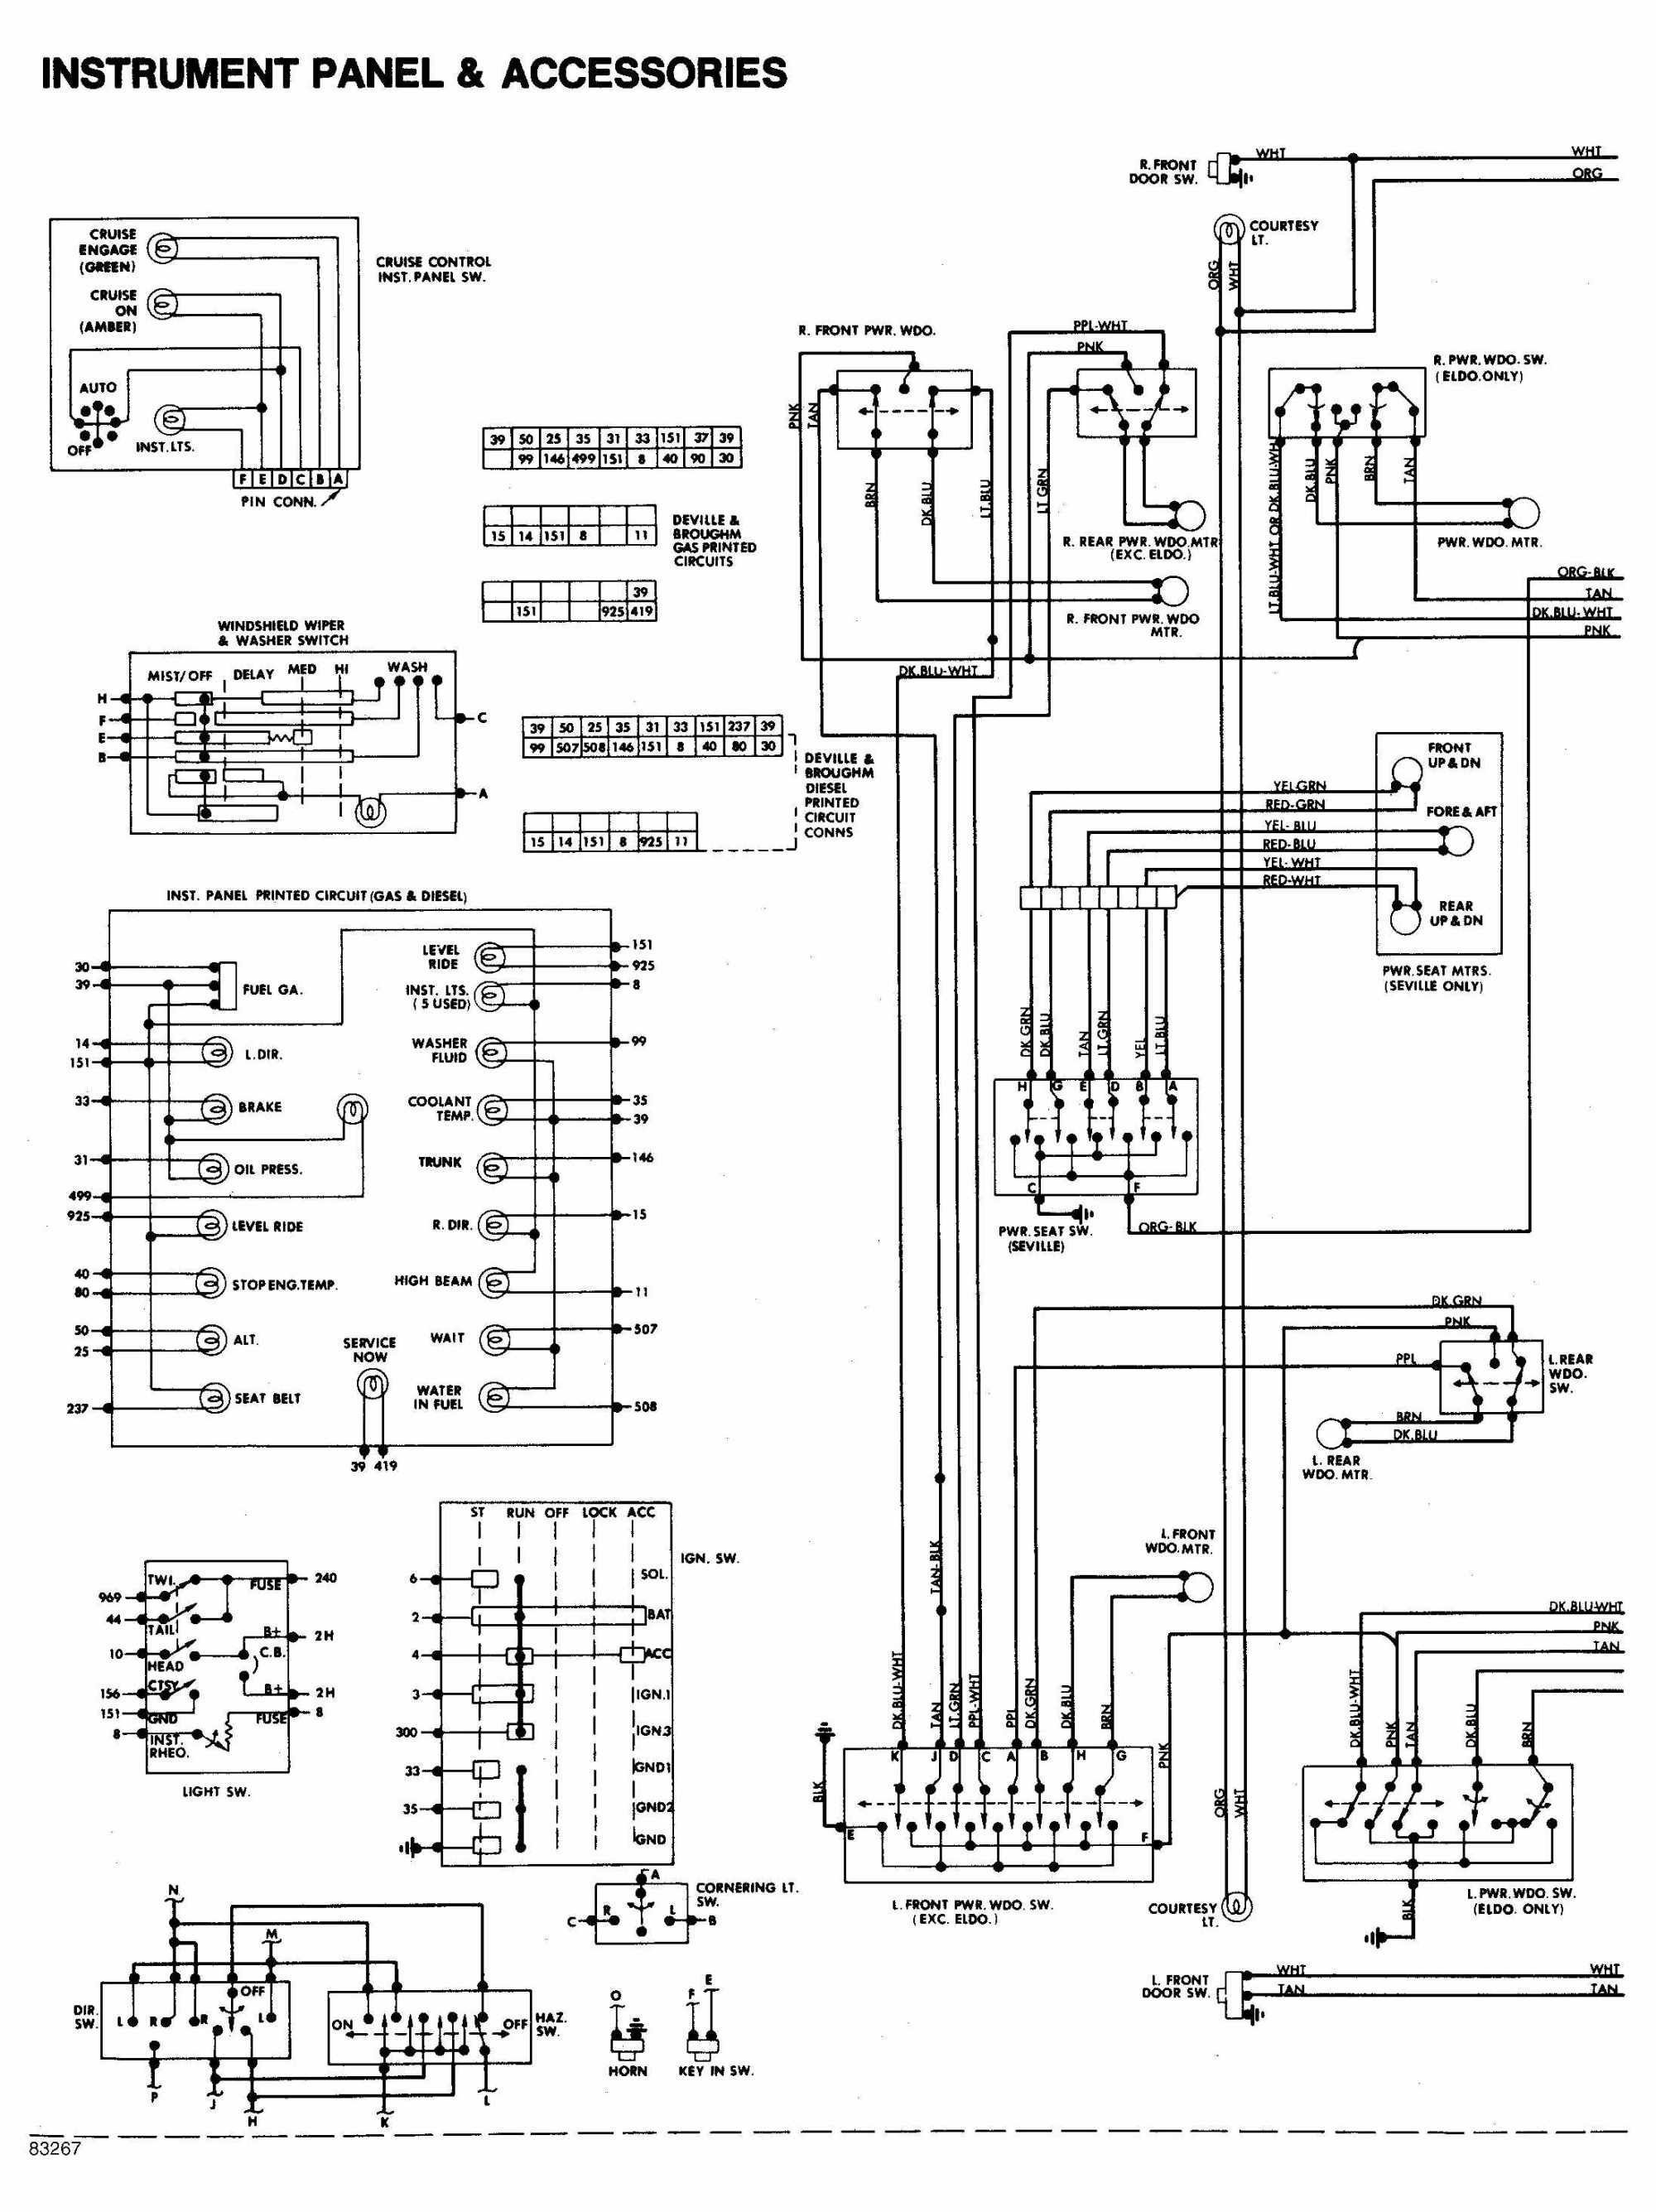 hight resolution of wiring diagram 2001 cadillac deville wiring diagram data val 2001 cadillac deville ac wiring diagram